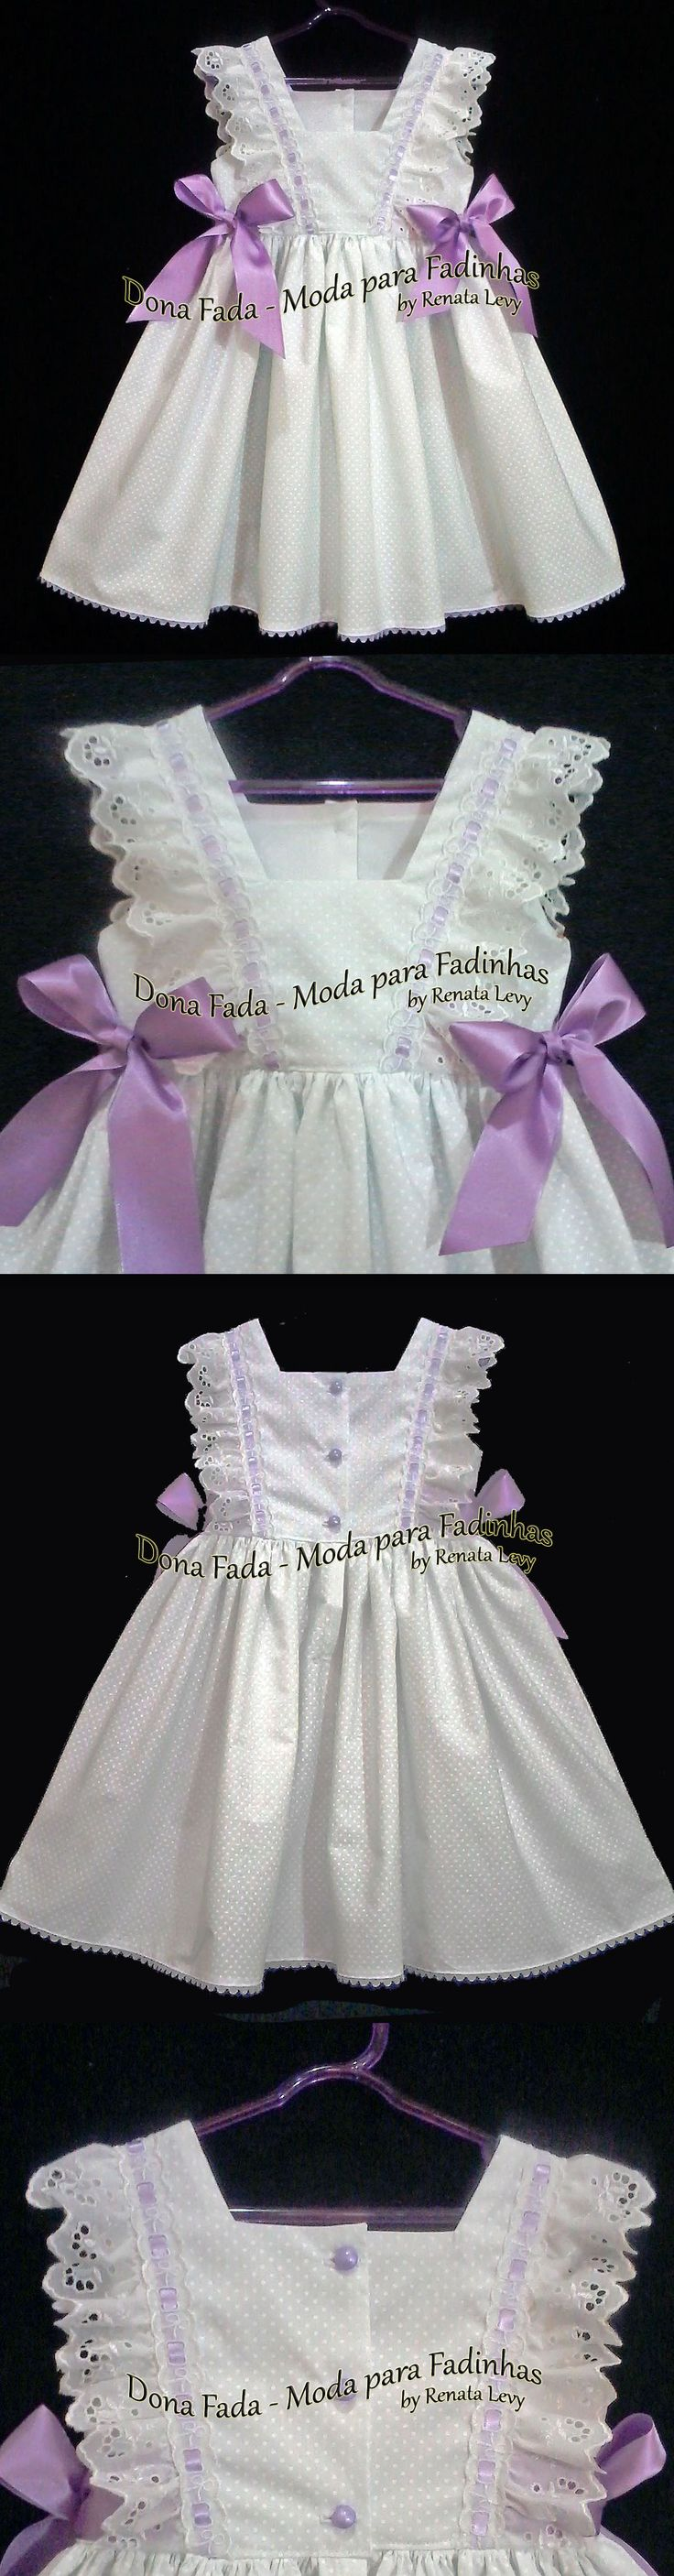 184 best proyecto vestidos faciles nia as y ja venes images on